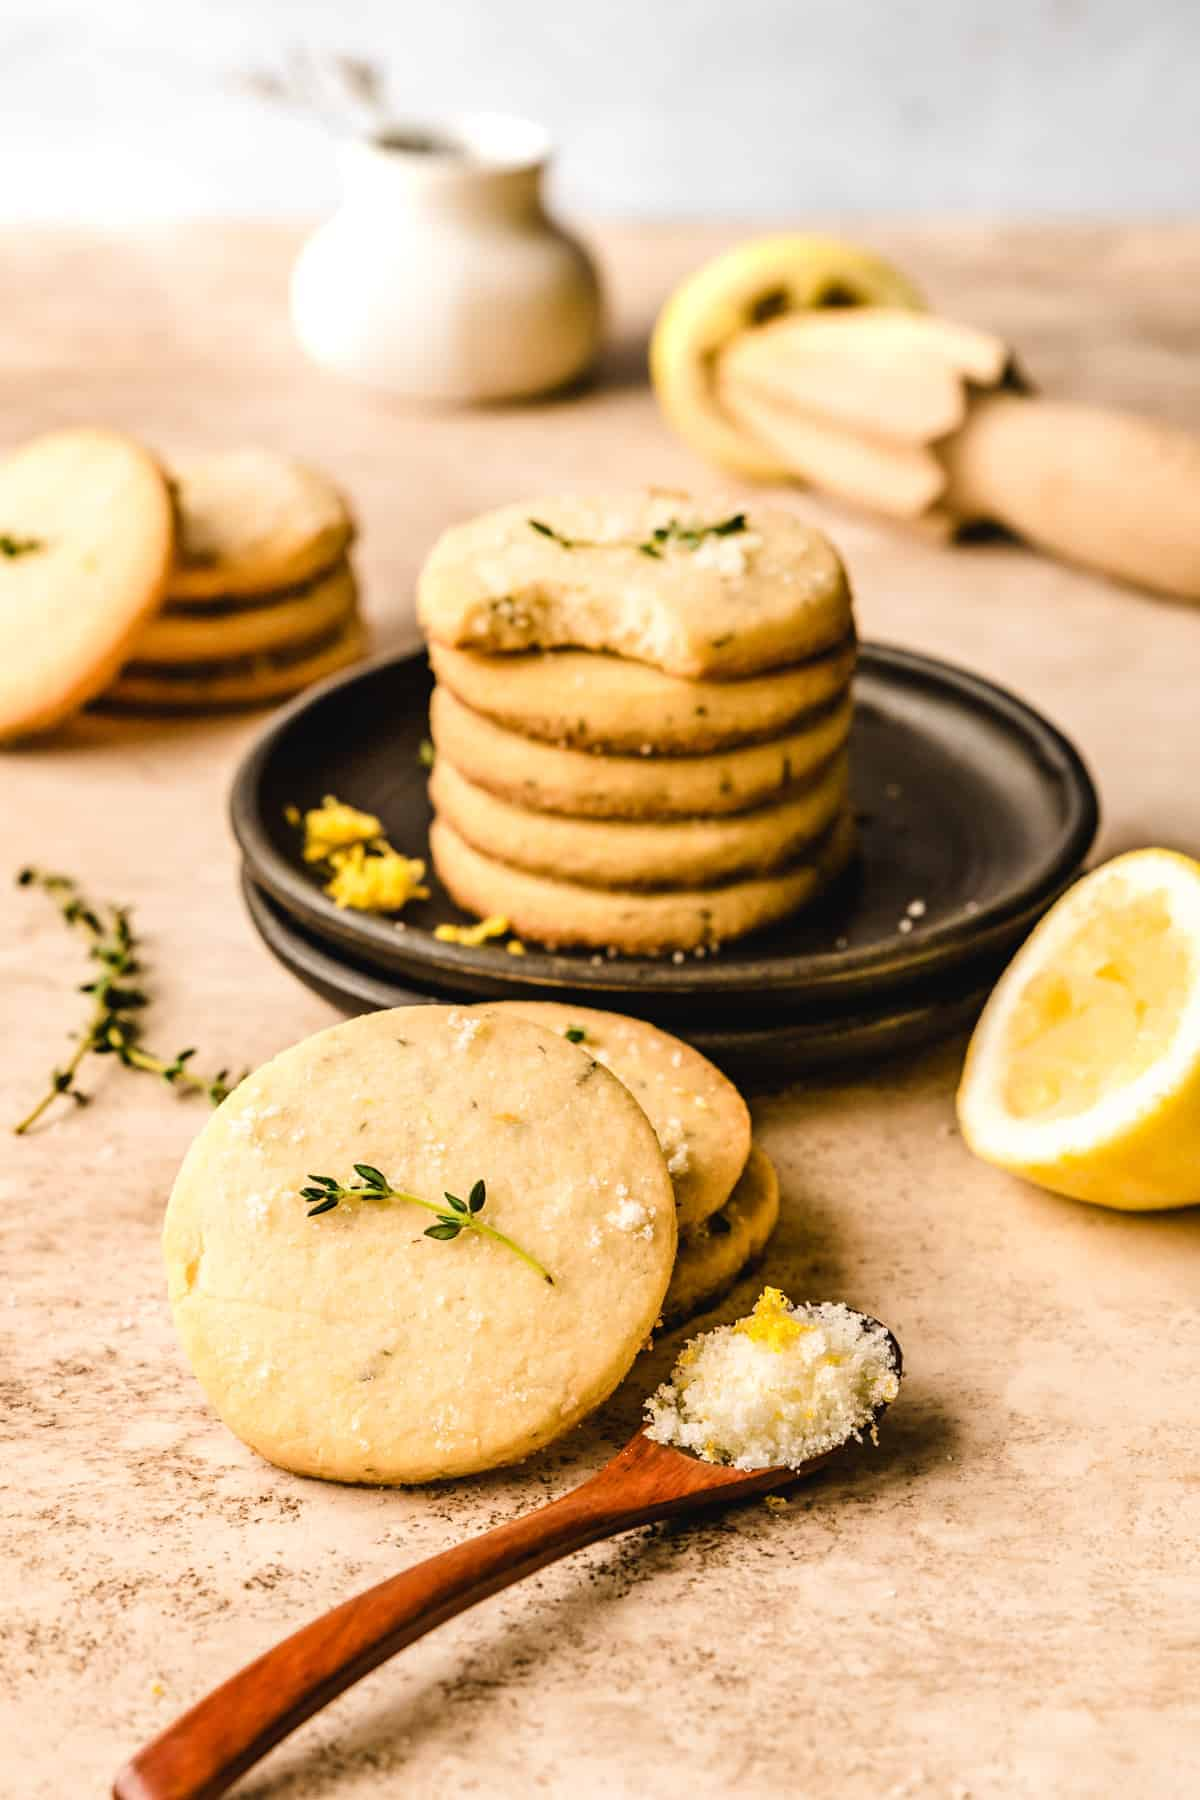 Grab a couple of these delicious (and easy to make) lemon thyme shortbread cookies to snack on whenever you need a treat.